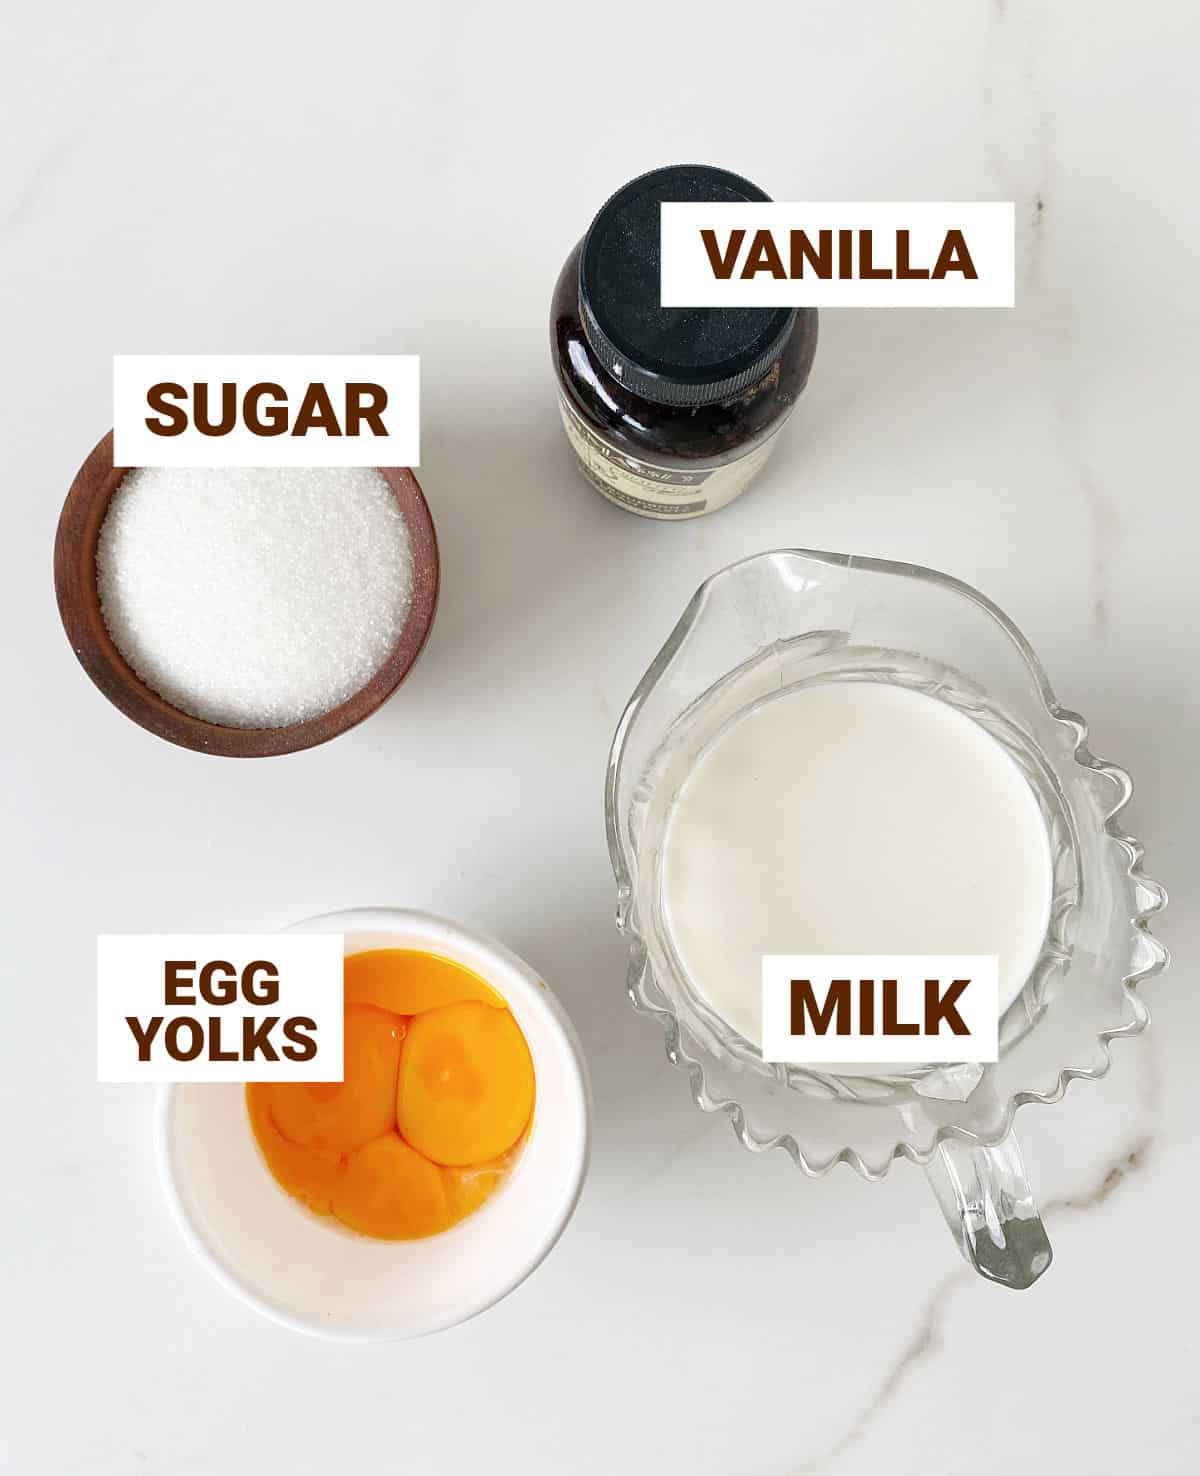 Bowls with ingredients for creme anglaise on white surfacce including egg yolks, sugar, milk, and vanilla